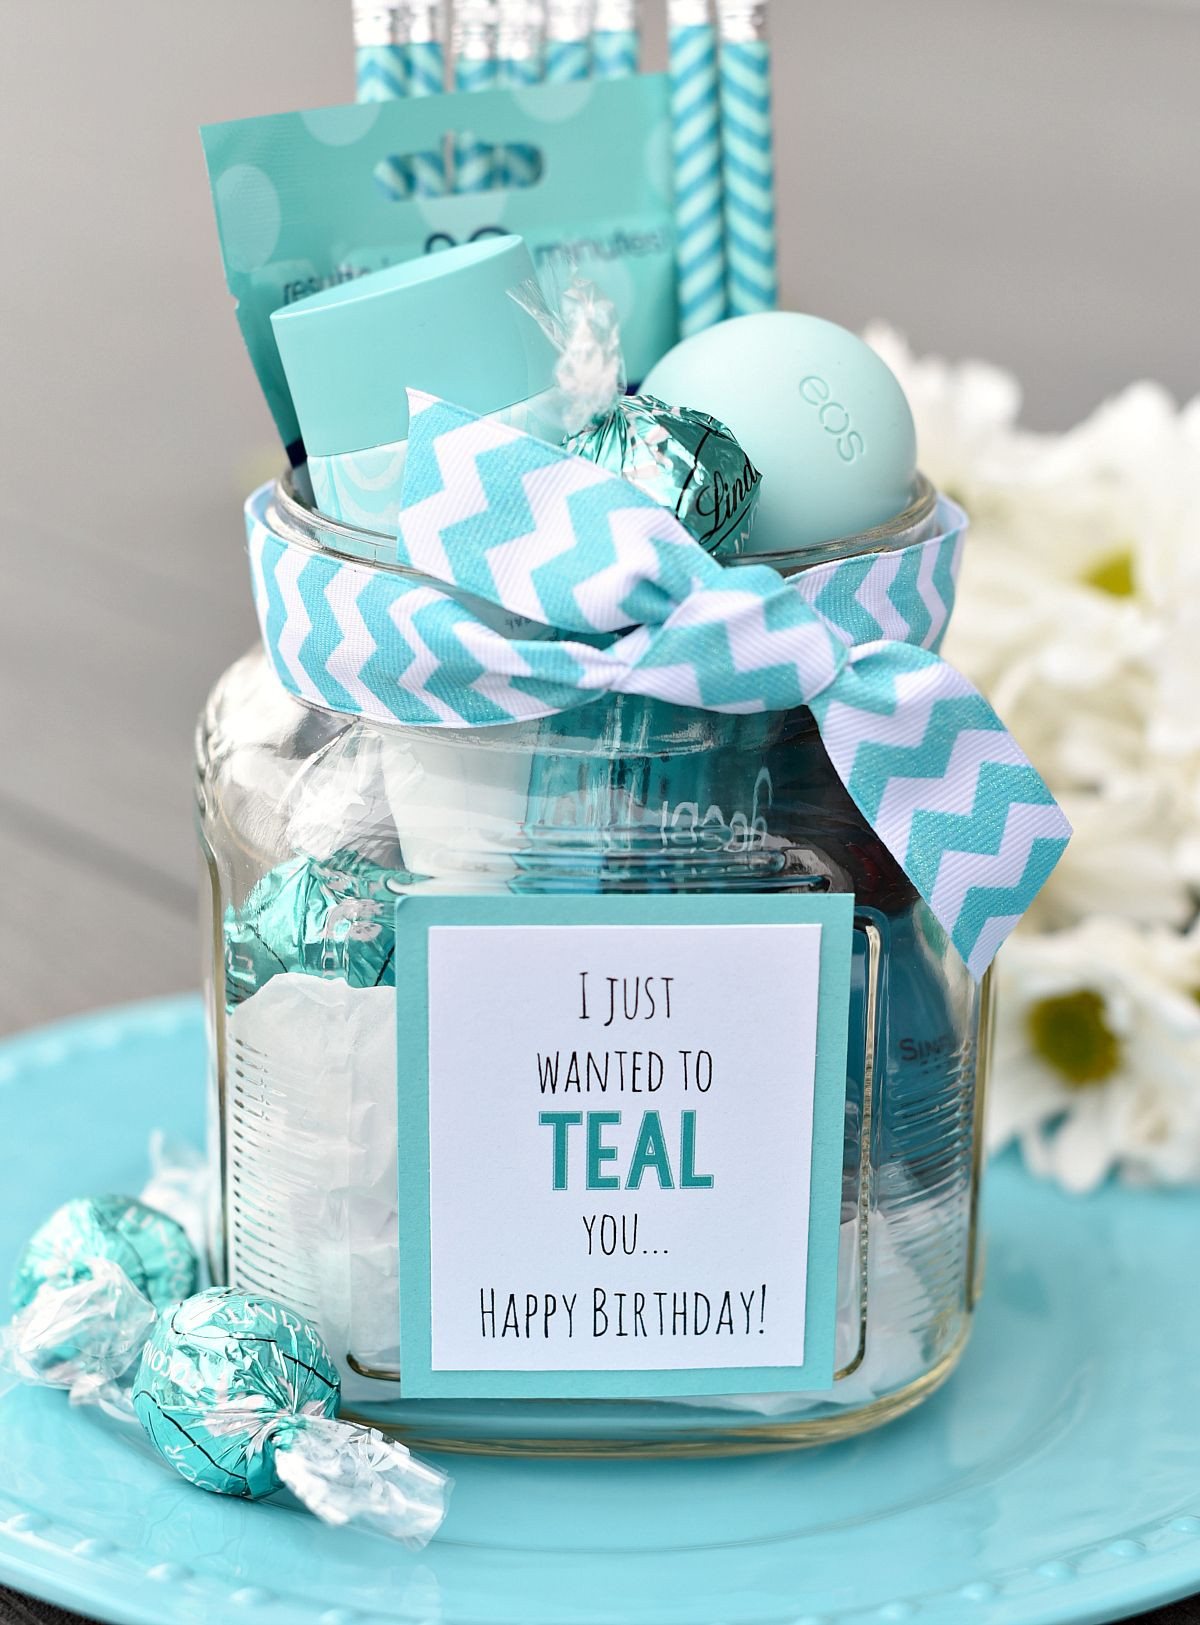 Creative Gift Ideas For Best Friend  Teal Birthday Gift Idea for Friends